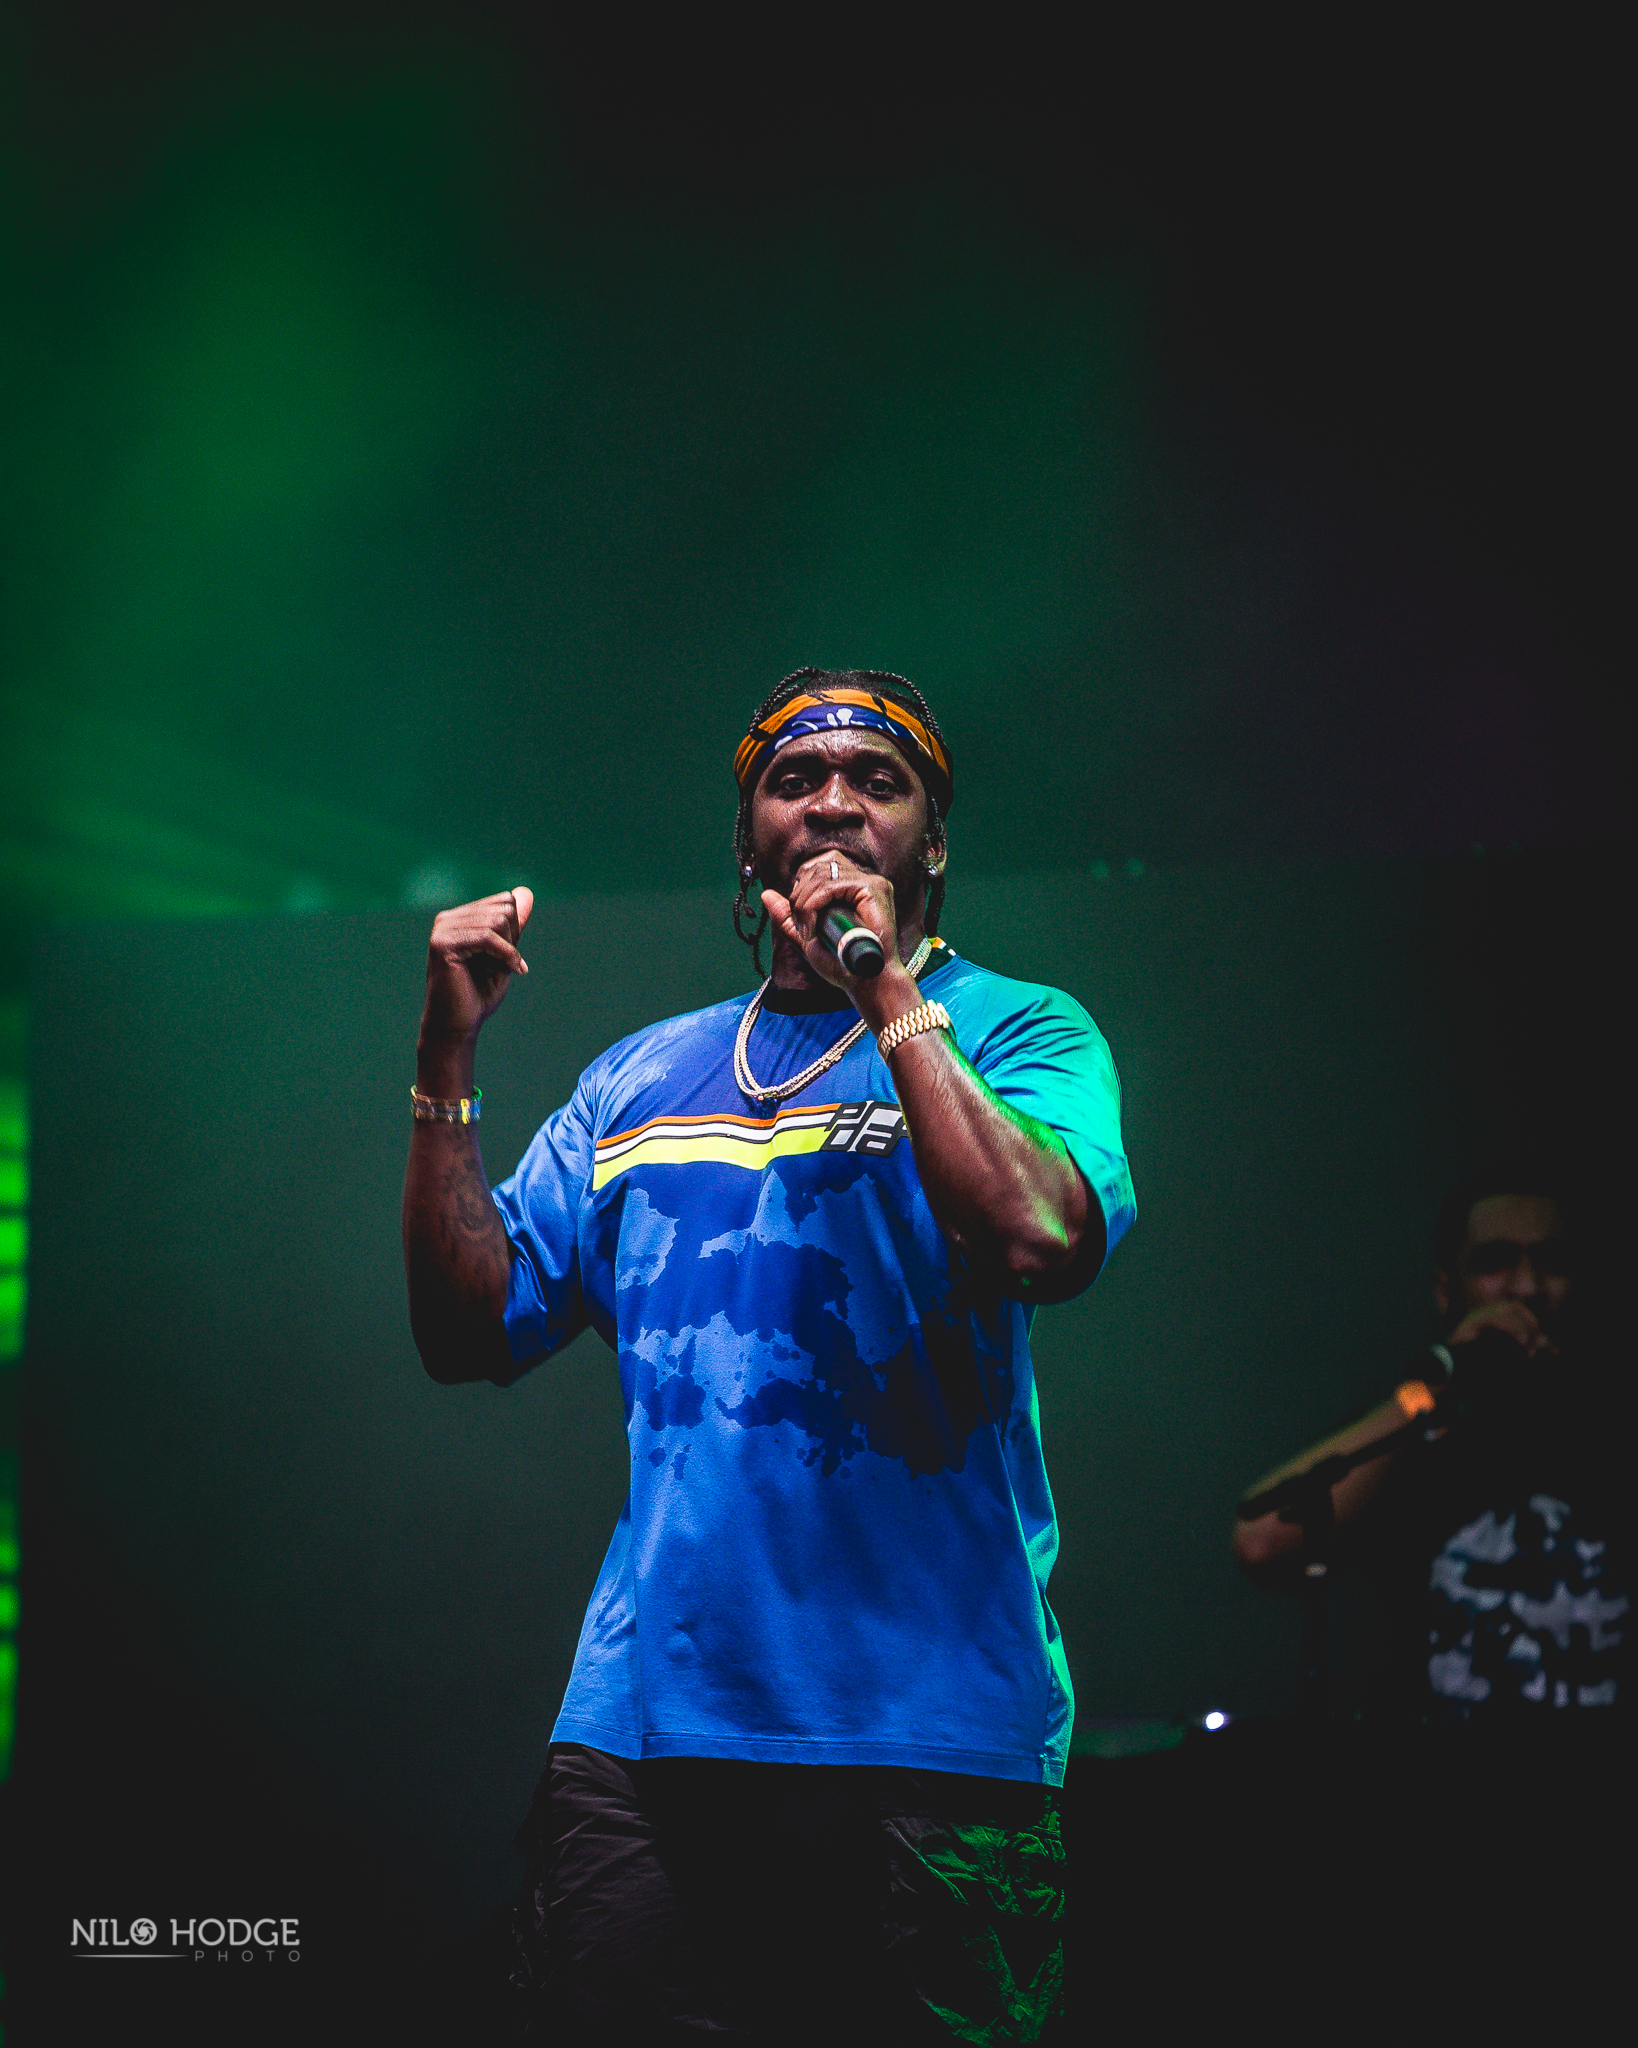 Pusha T at AfroPunk Fest in Brooklyn, NY